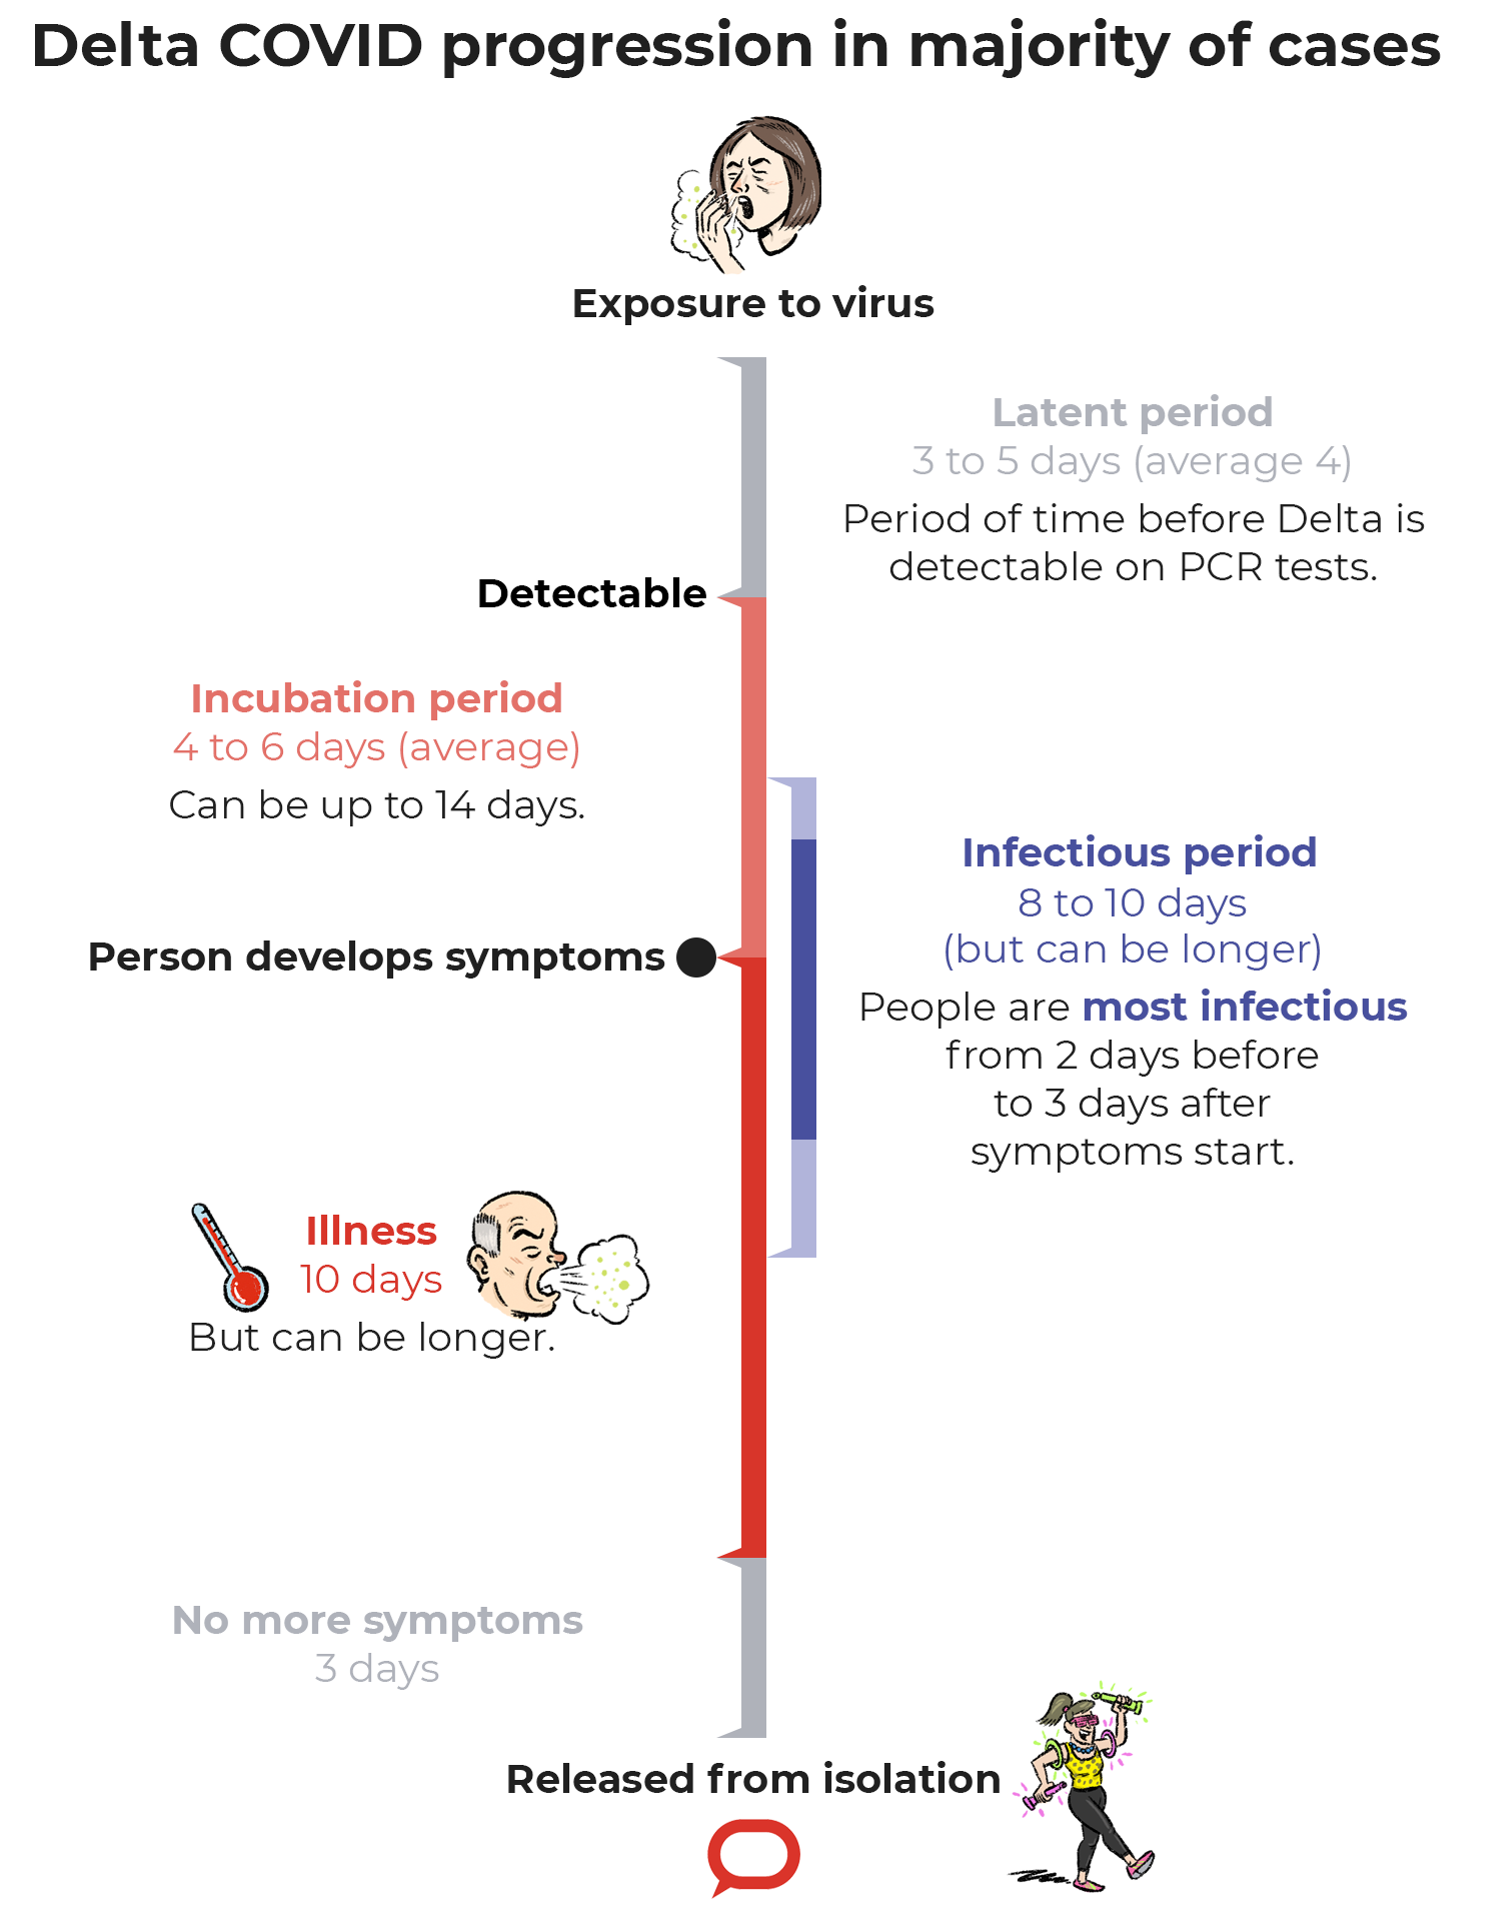 A graph walking showing the rough progression of symptoms in a COVID infection.